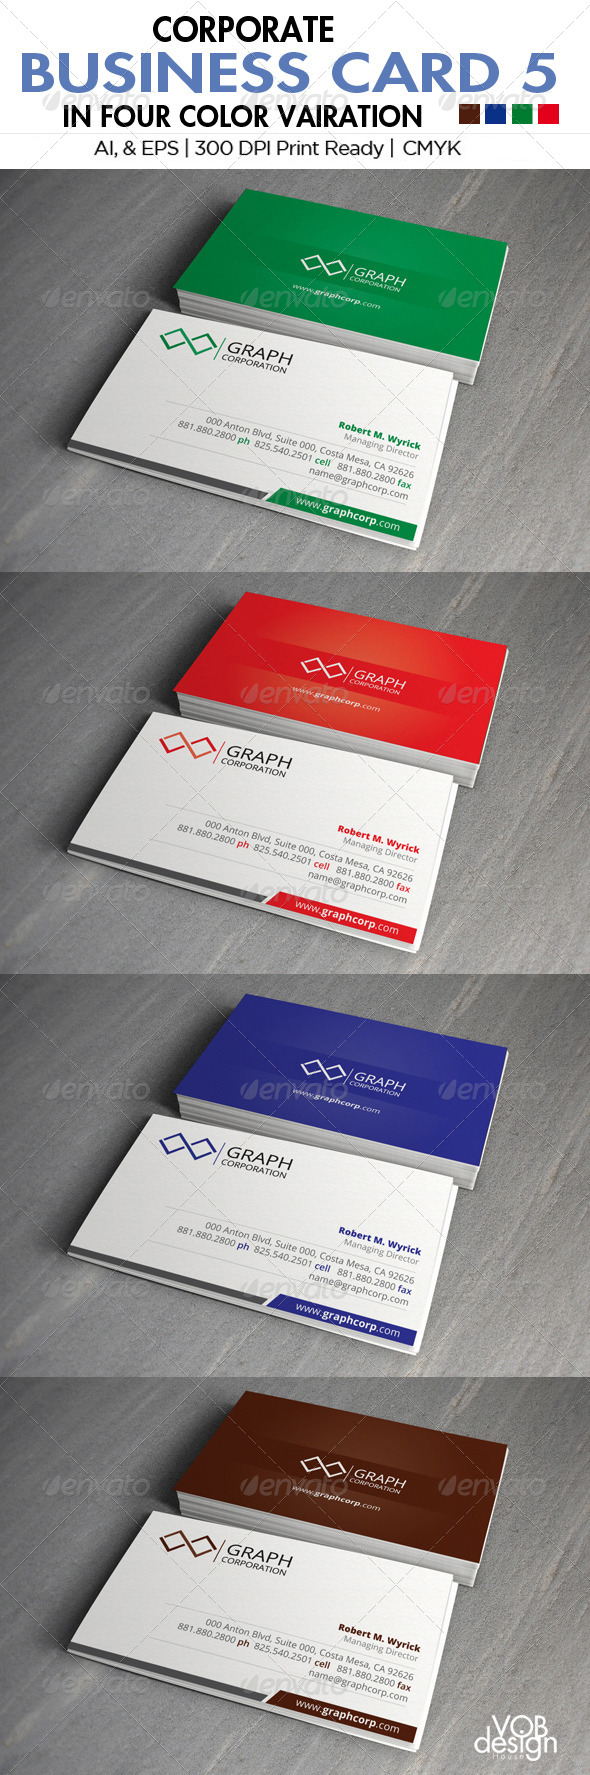 Corporate Business Card 5 - Creative Business Cards